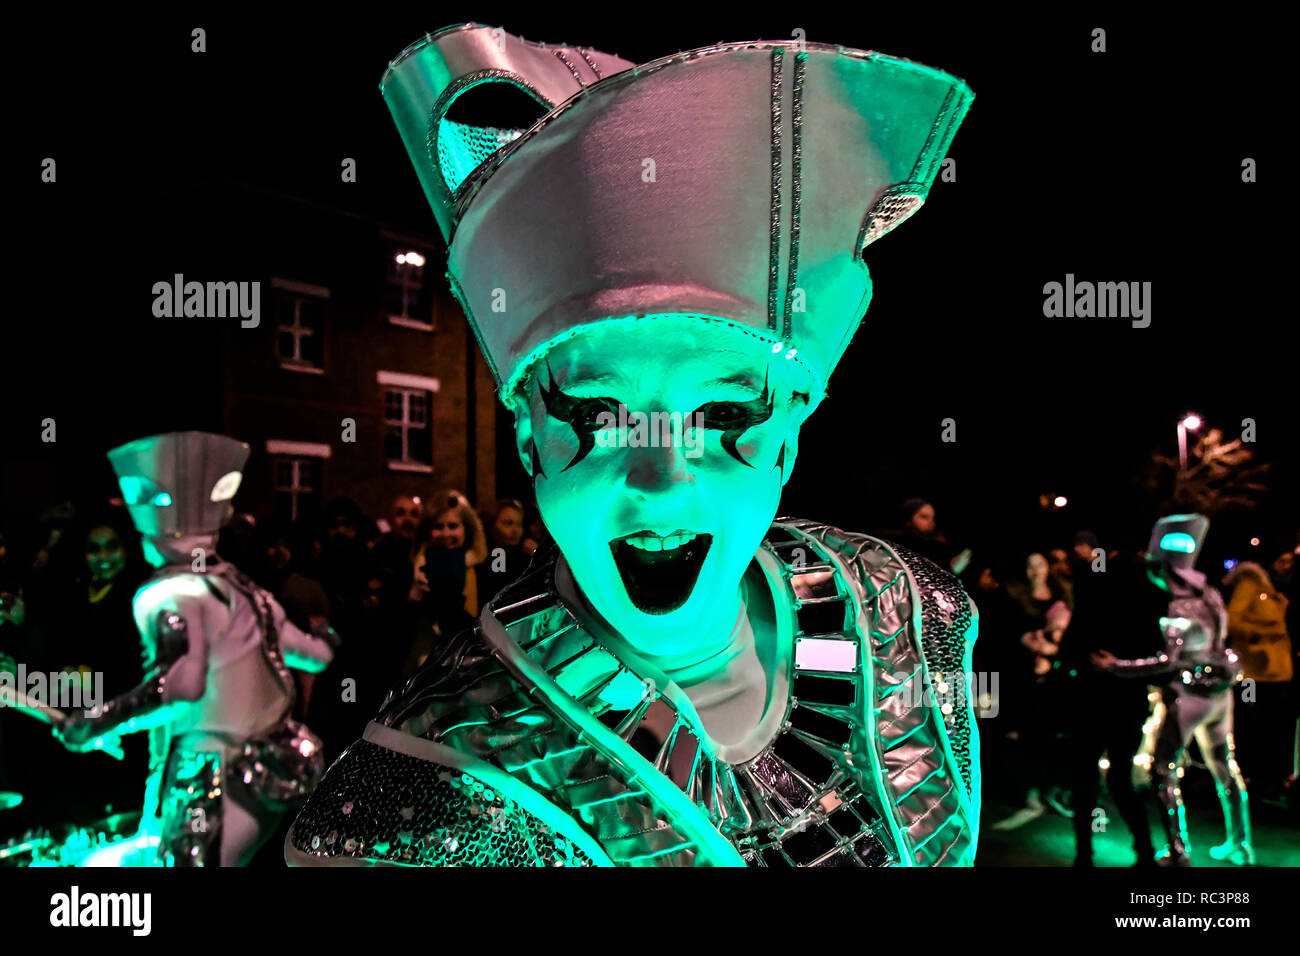 London, UK. 13th January 2019. Local community attends 'Welcome to the Forest' with spectacular paraders with a amazing lights dress, drums and gorgeous samba dancers at Forest Road, Walthamstow on 13 January 2019, London, UK. Credit: Picture Capital/Alamy Live News - Stock Image